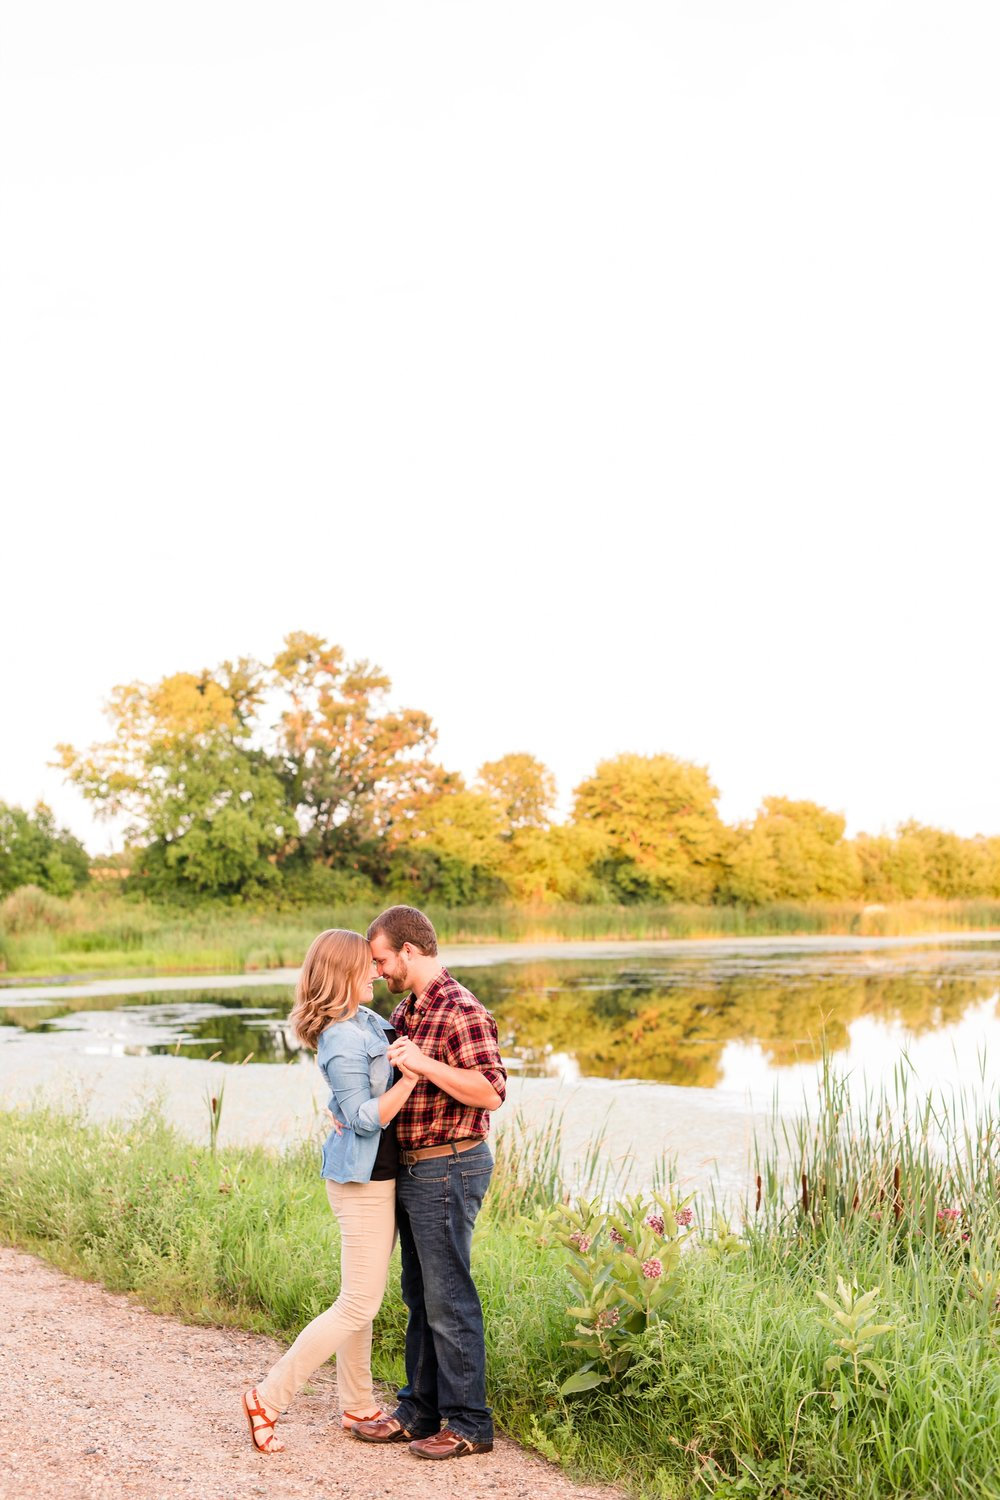 AmberLangerudPhotography_Countryside Engagement Session in Minnesota_3130.jpg